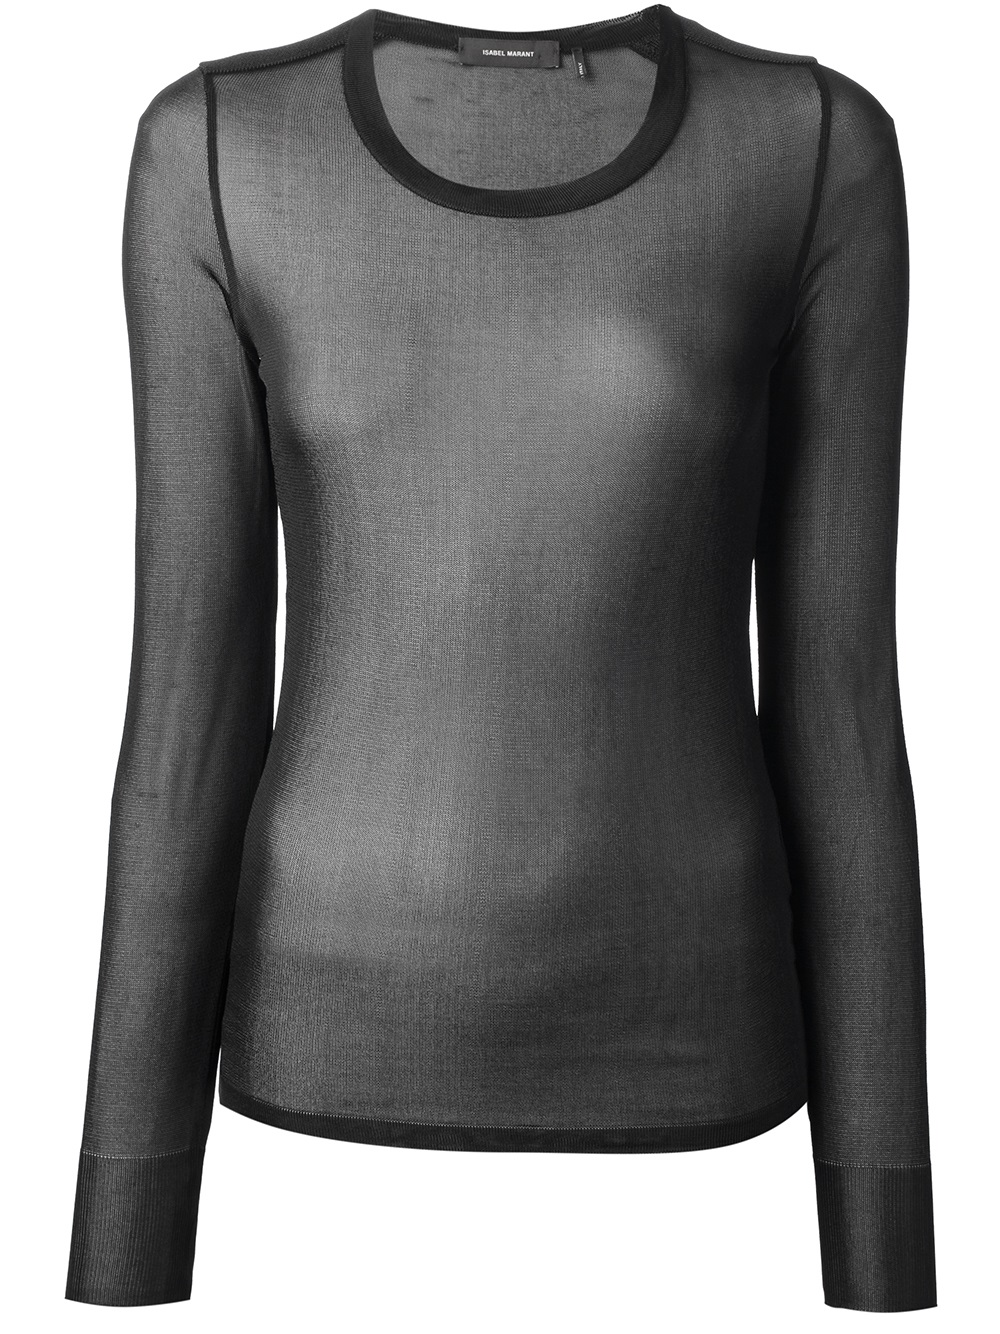 Black Mesh Long Sleeve Tops. Showing 40 of results that match your query. Search Product Result. Product - We're Hoping It's a Dinosaur Boy Black Maternity Soft T-Shirt. Product Image. Price $ Product Title. We're Hoping It's a Dinosaur Boy Black Maternity Soft T-Shirt. See Details.